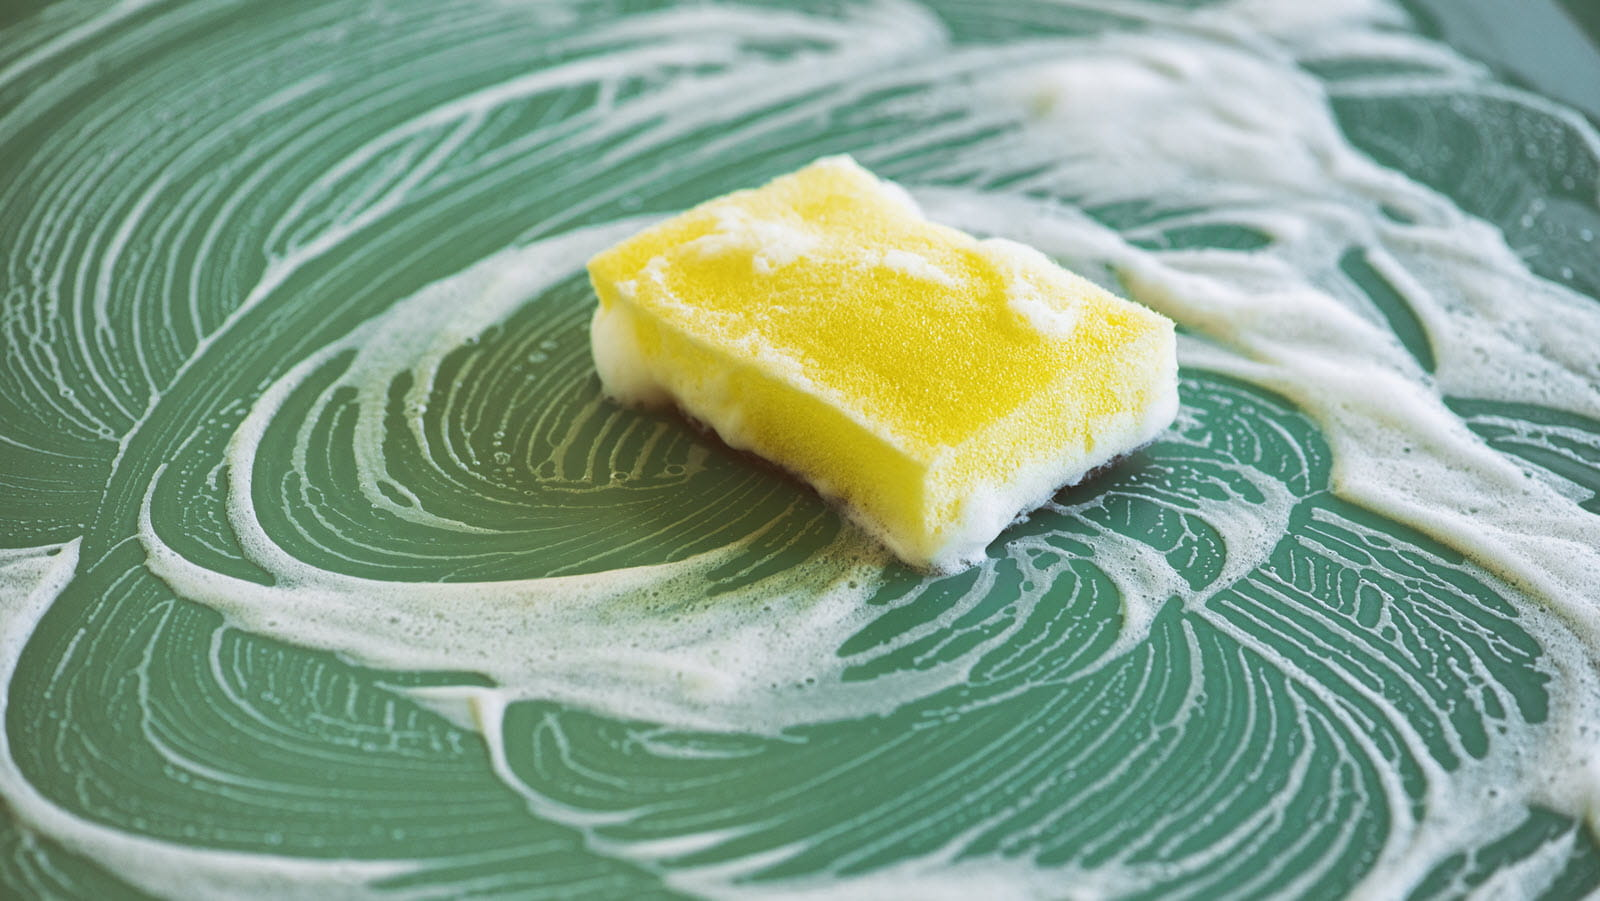 yellow sponge with suds on a green countertop